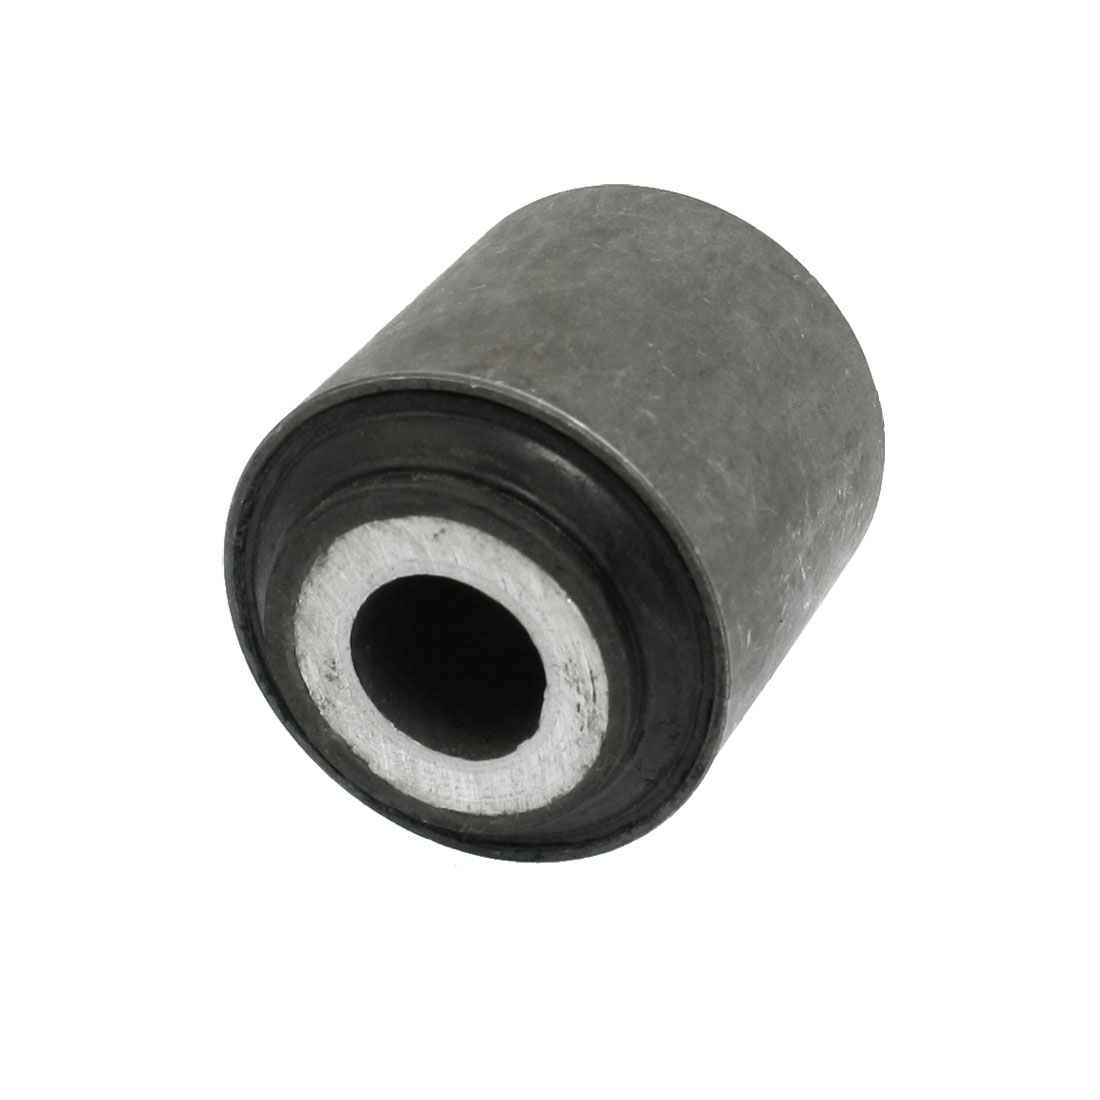 Car Spare Part Rear Lower Shock Absorber Bushing 52622-S7A-014